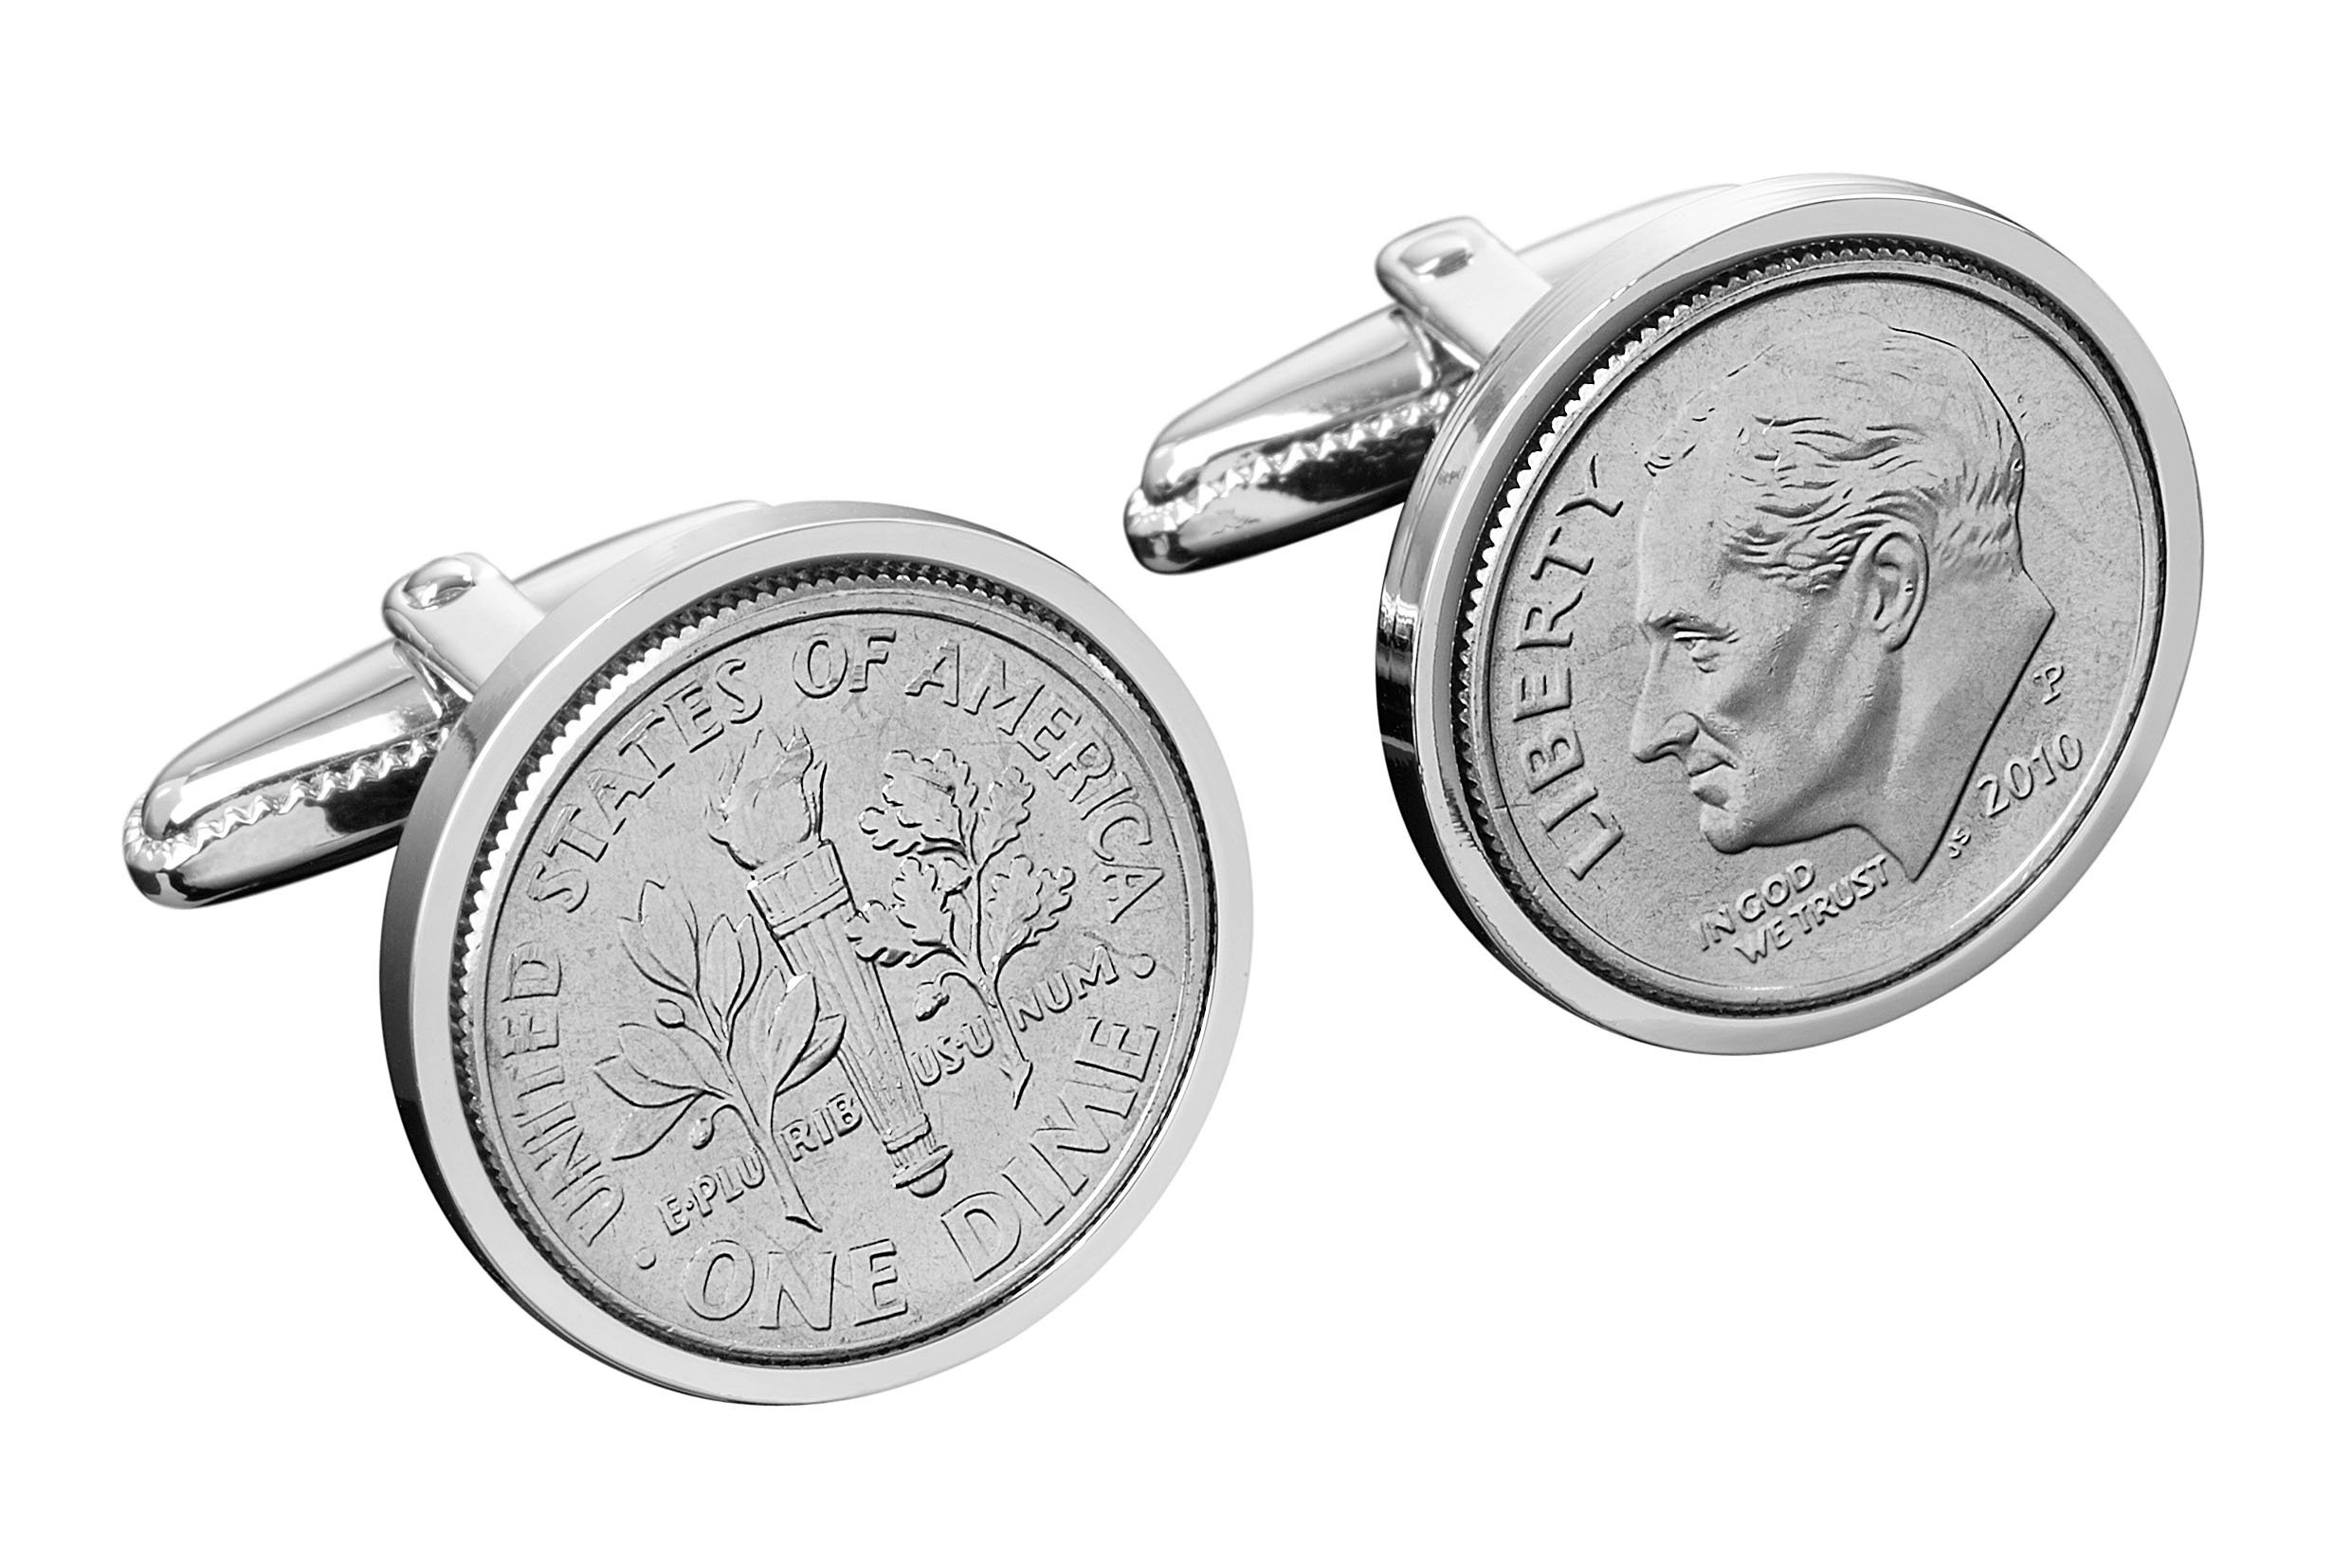 Men's Dime Cuff Links (Pair) US Mint Coins   Sterling Silver Designer Accessories   Small, Metal Rotating Clasps   Intricate Details